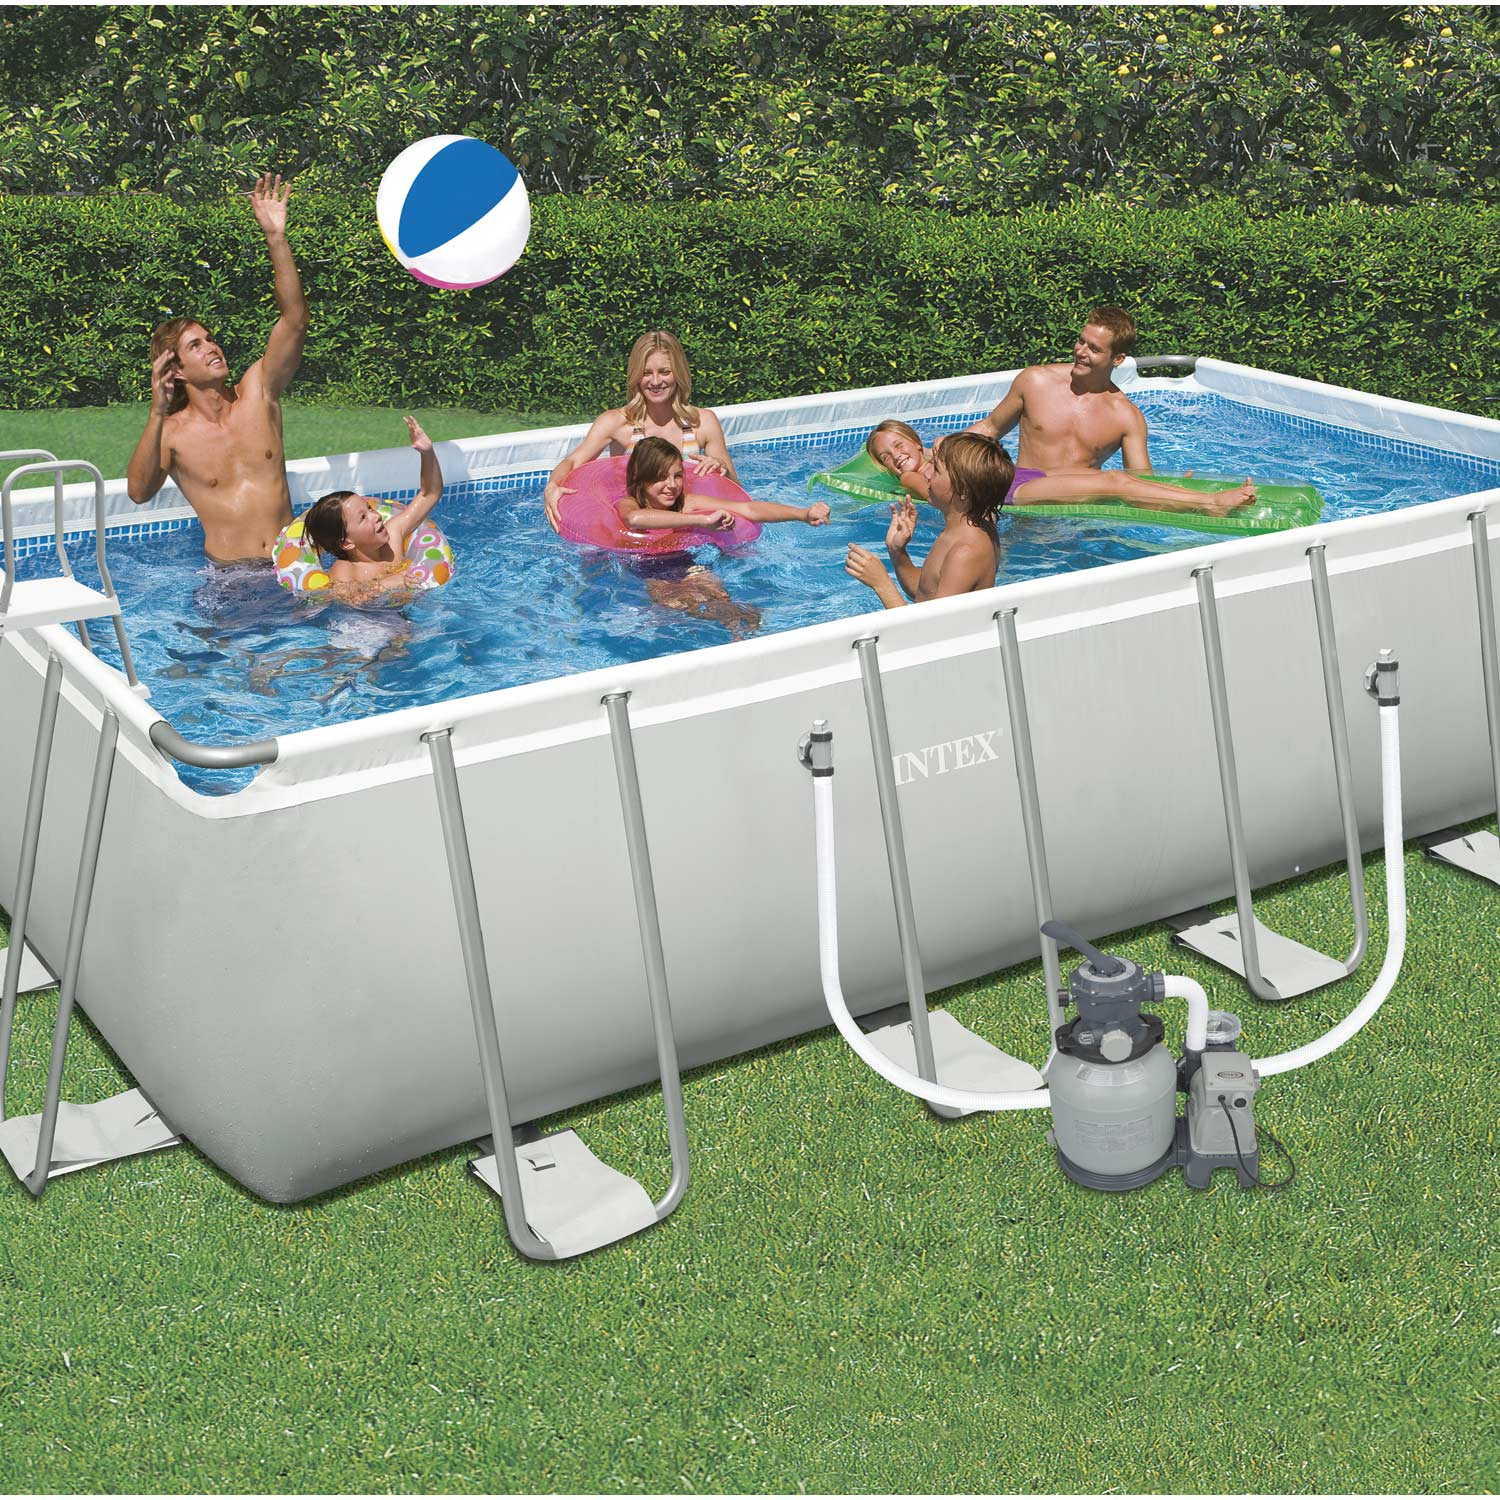 Piscine hors sol autoportante tubulaire ultra silver intex for Piscine hors sol declaration